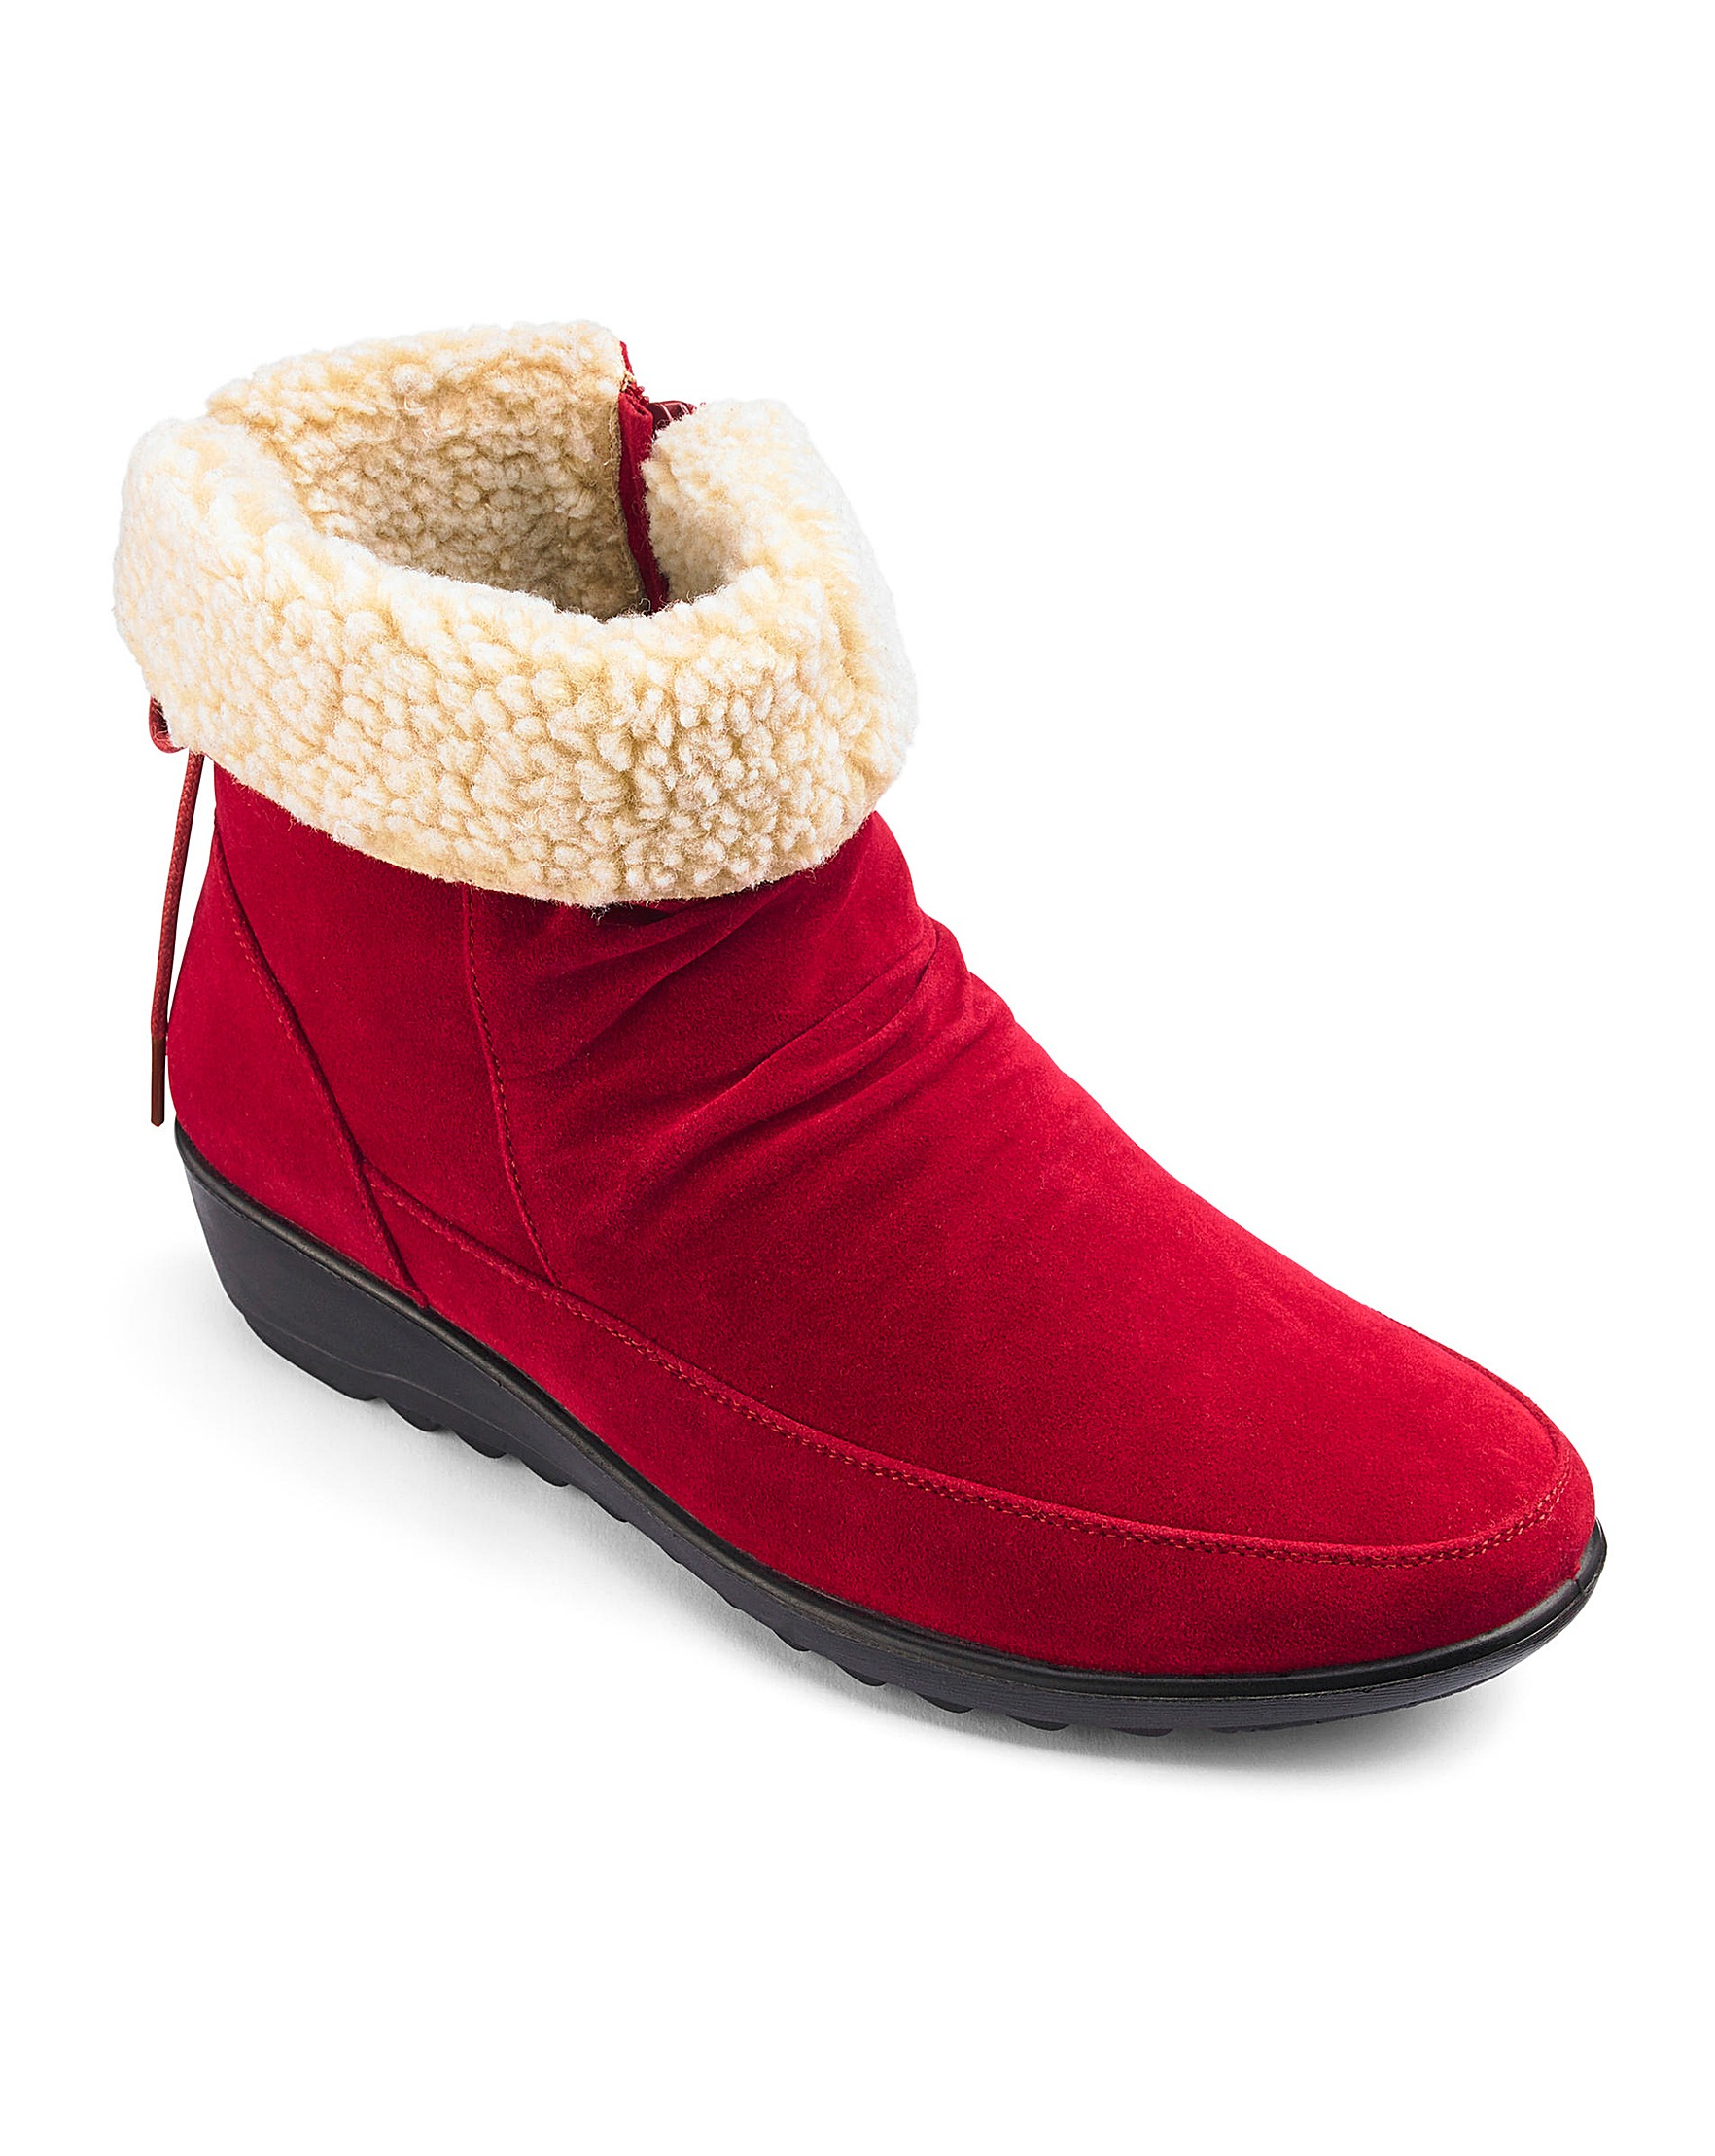 c211cb6c60c Cushion Walk Ankle Boots EEE Fit